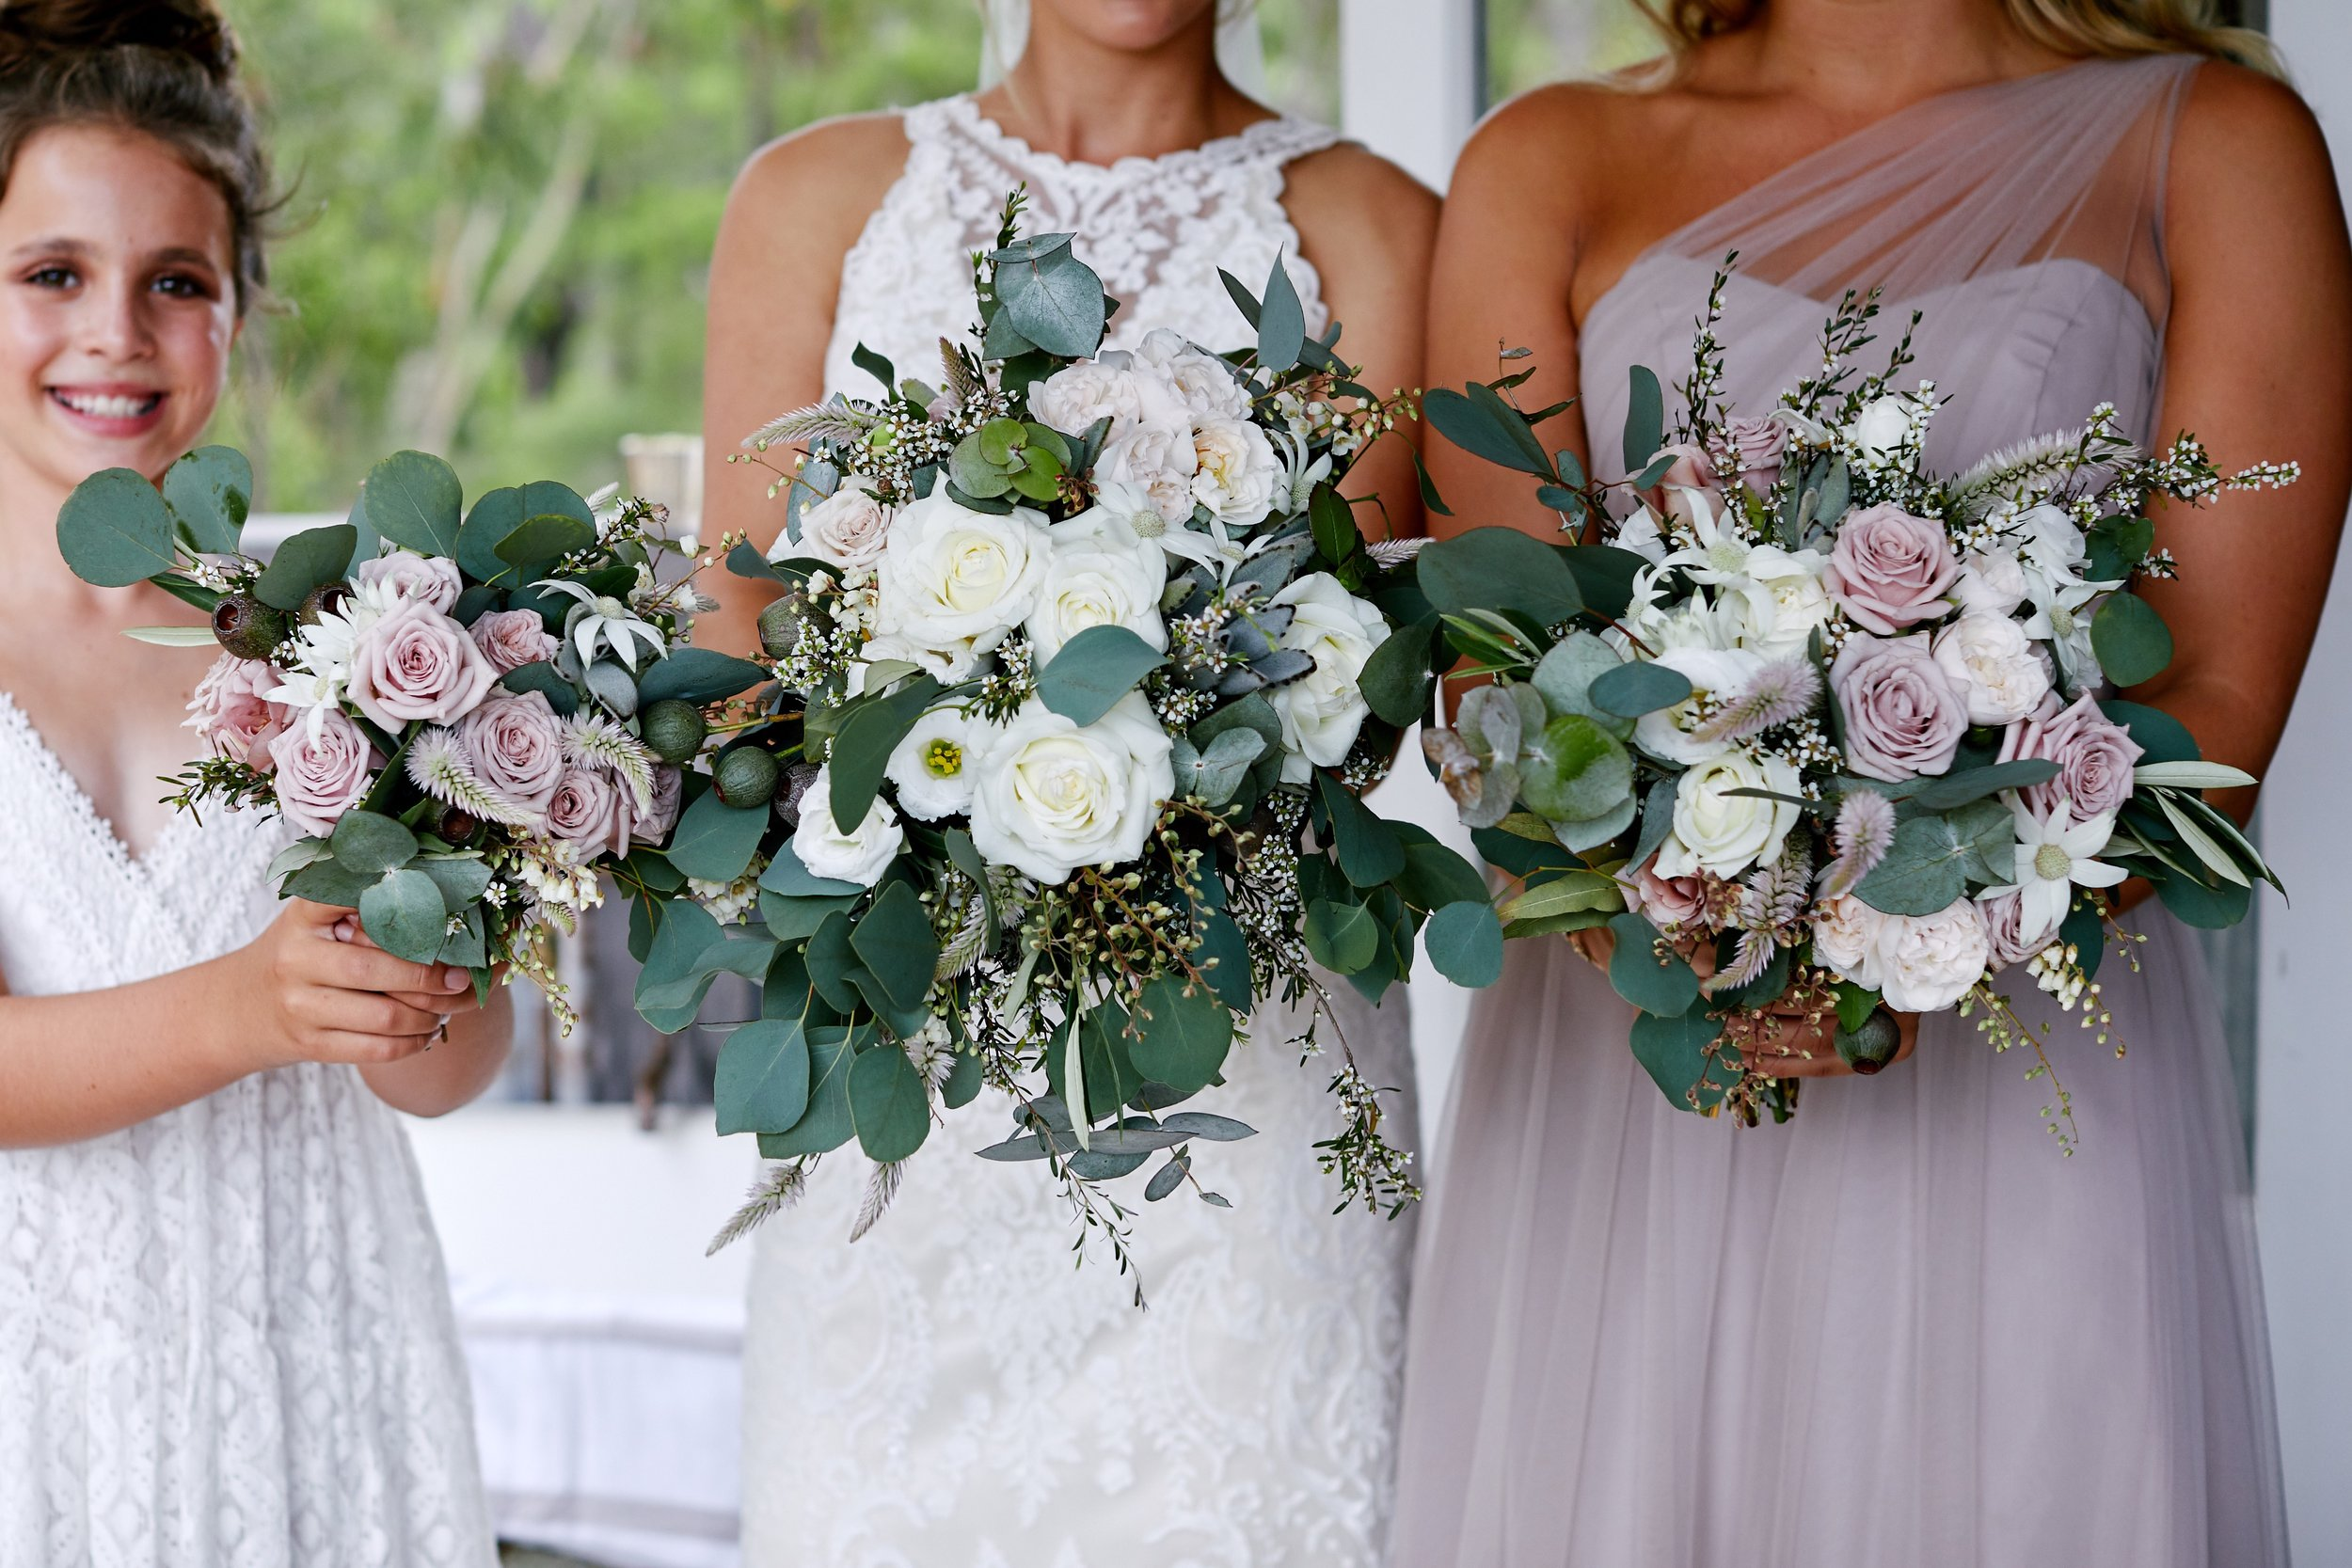 Wedding Flowers with Bride and Bridesmaids getting ready for wedding at The Stables of Somersby Central Coast wedding venue